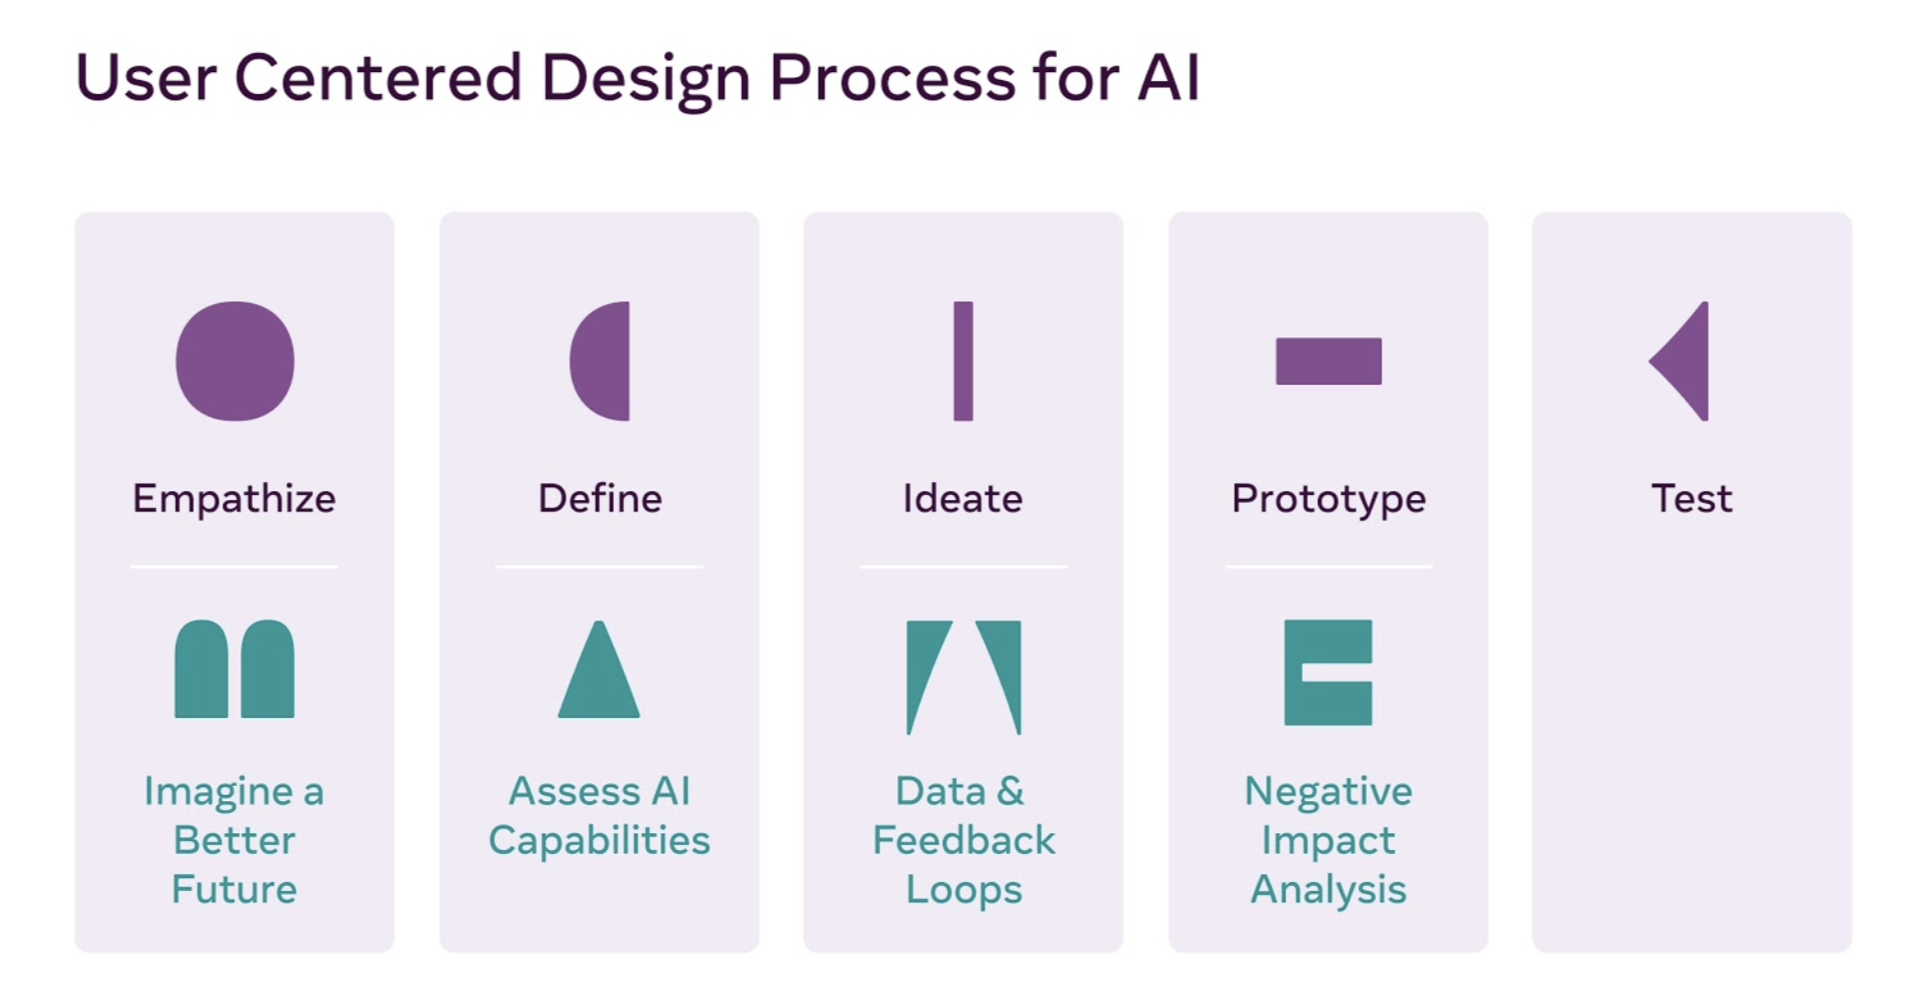 User centered design process for AI: Empathize, and also imagine a better future; define and assess AI Capabilities; ideate and create data & feedback loops; prototype and also conduct a negative impact analysis.